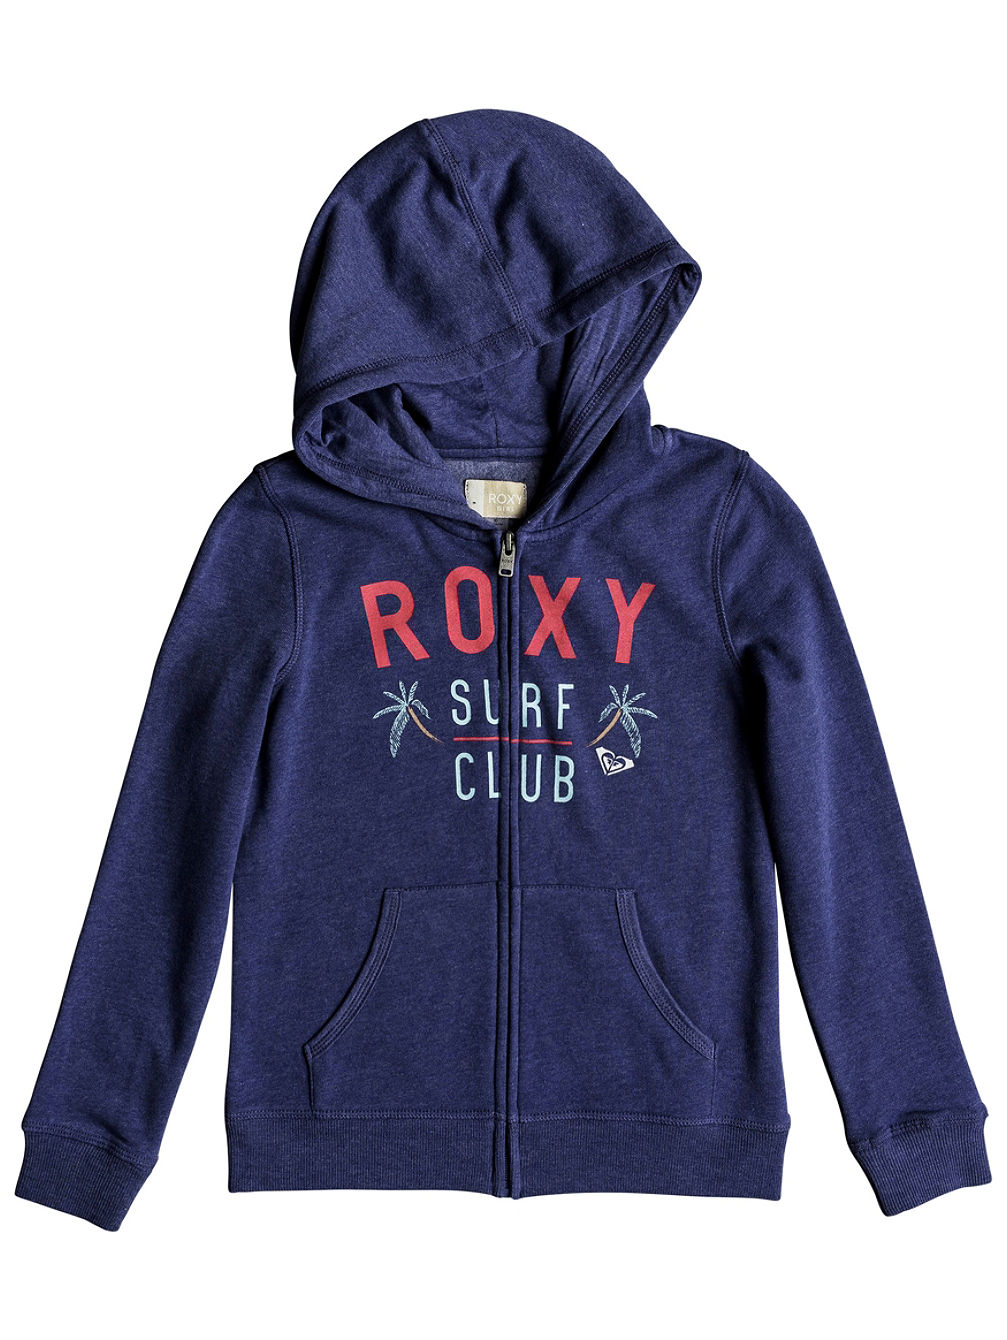 The Endless Round Zip Hoodie Girls